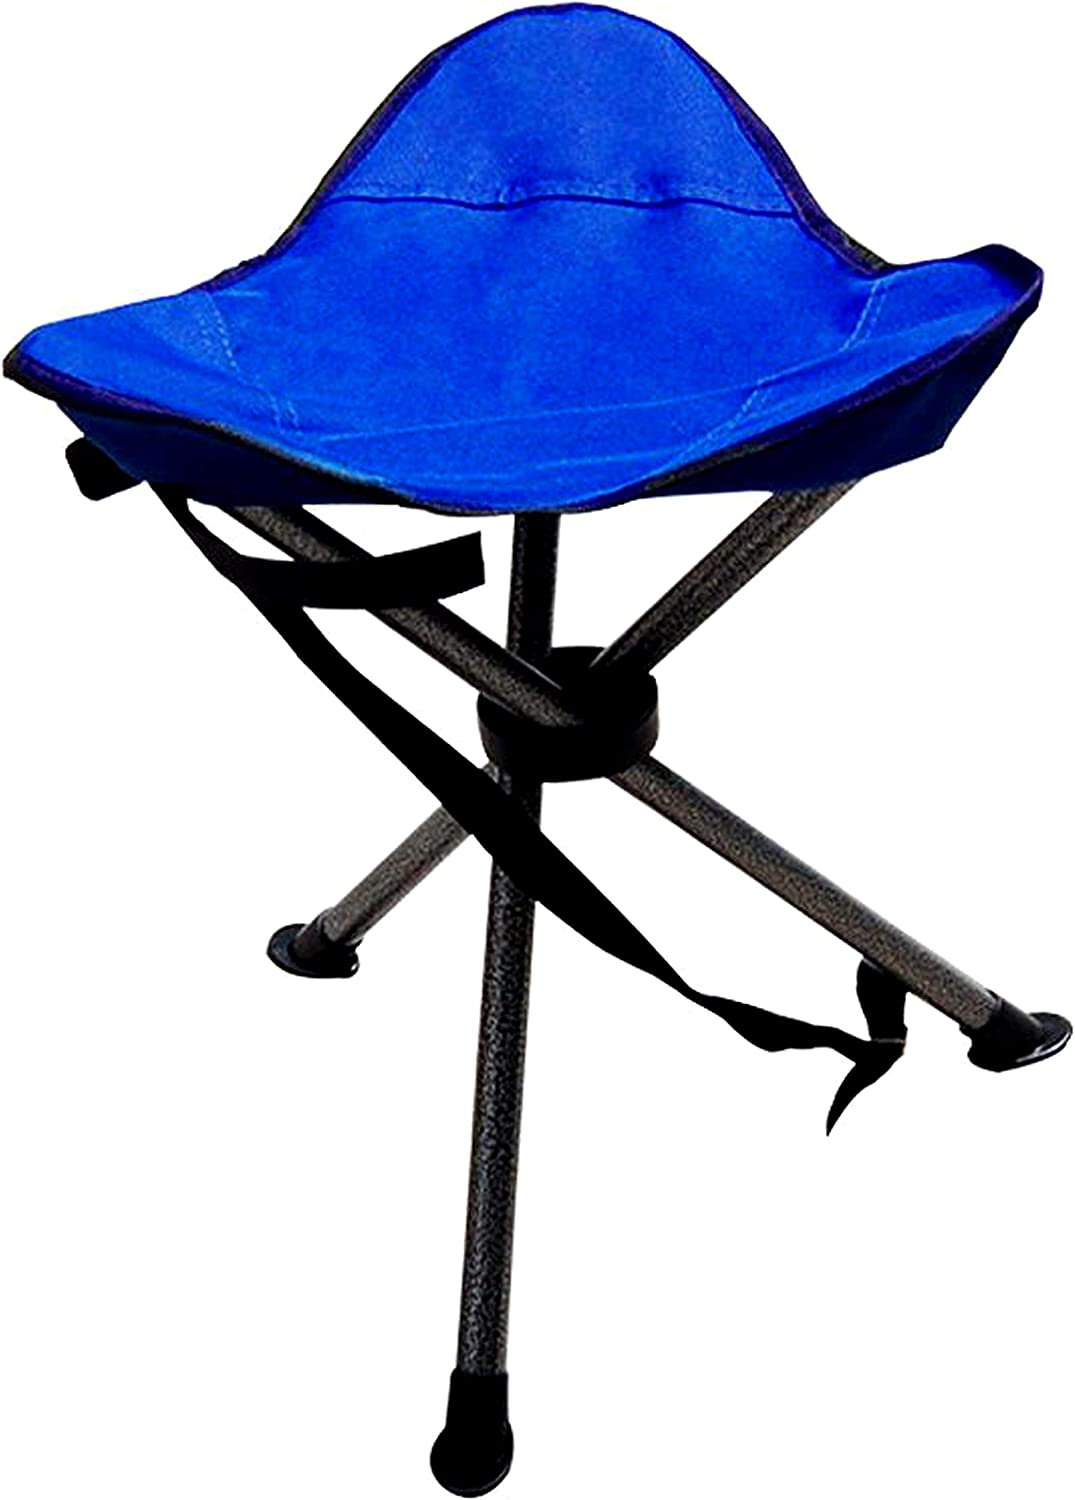 Picnic Chair Seat Cushion Pad Outdoor Garden Camping Beach Mat for Stool